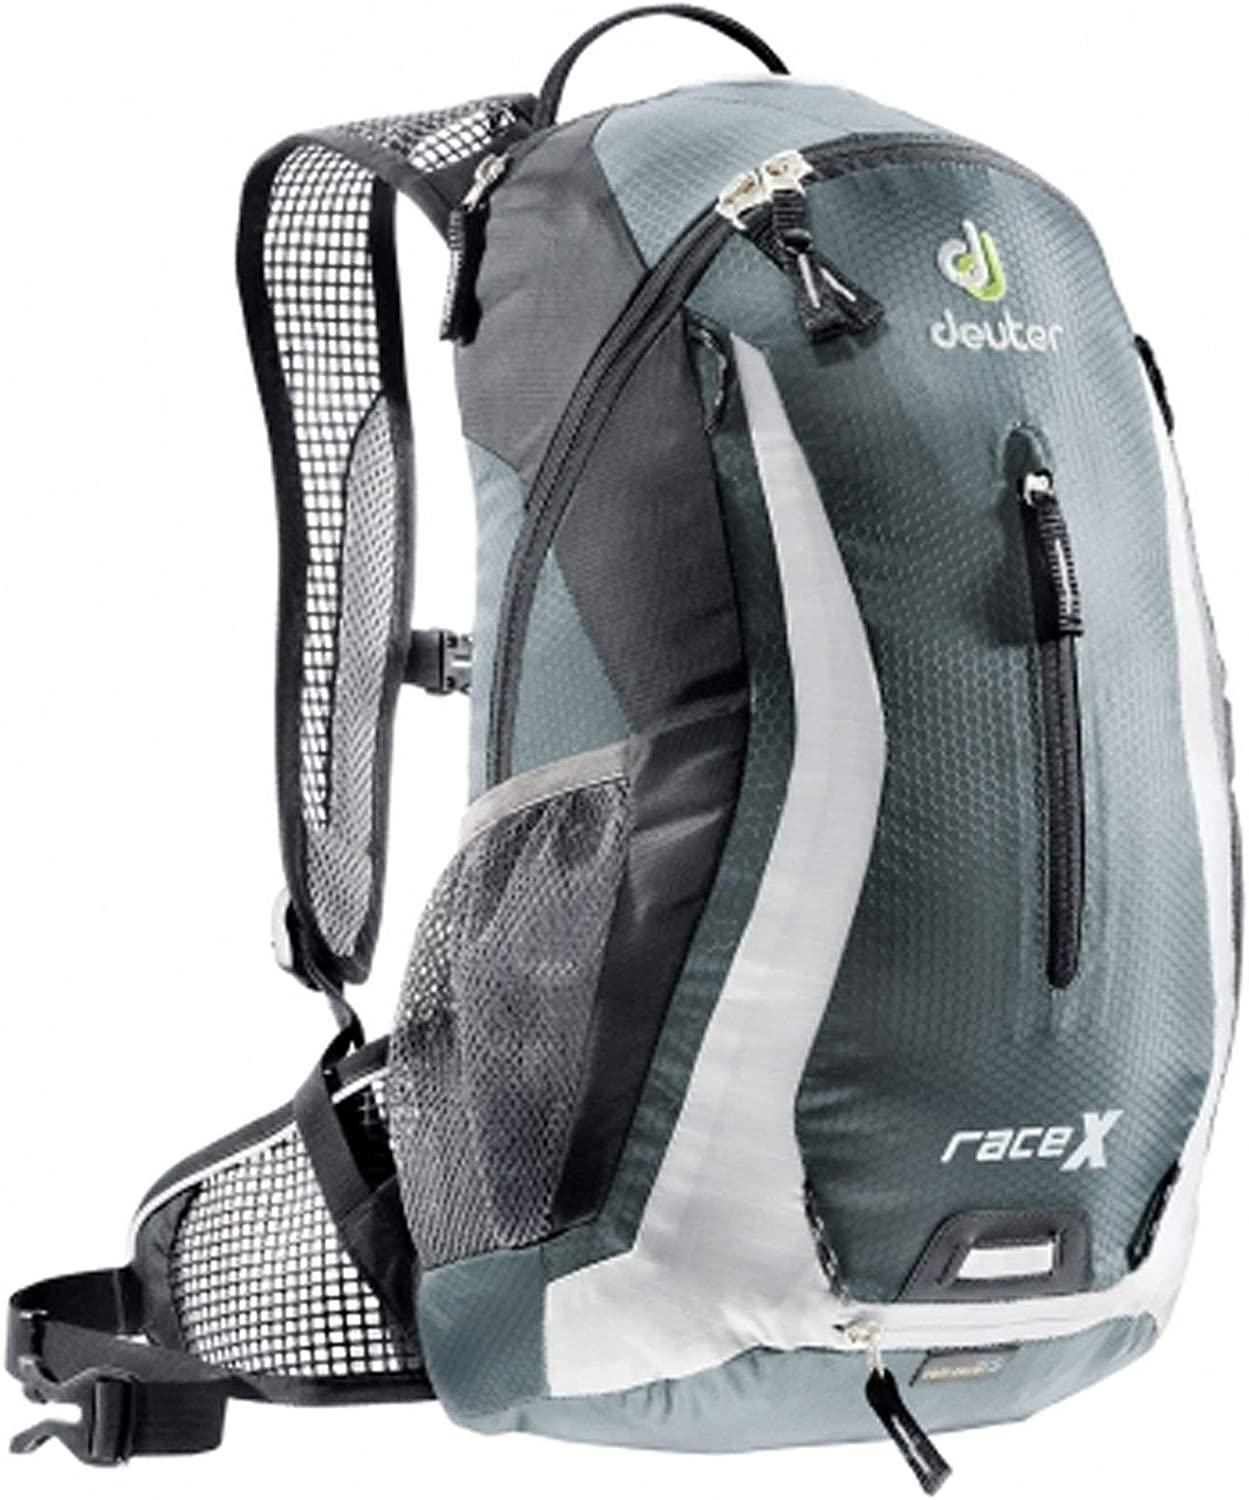 Deuter Race X Backpack – 730-900cu in